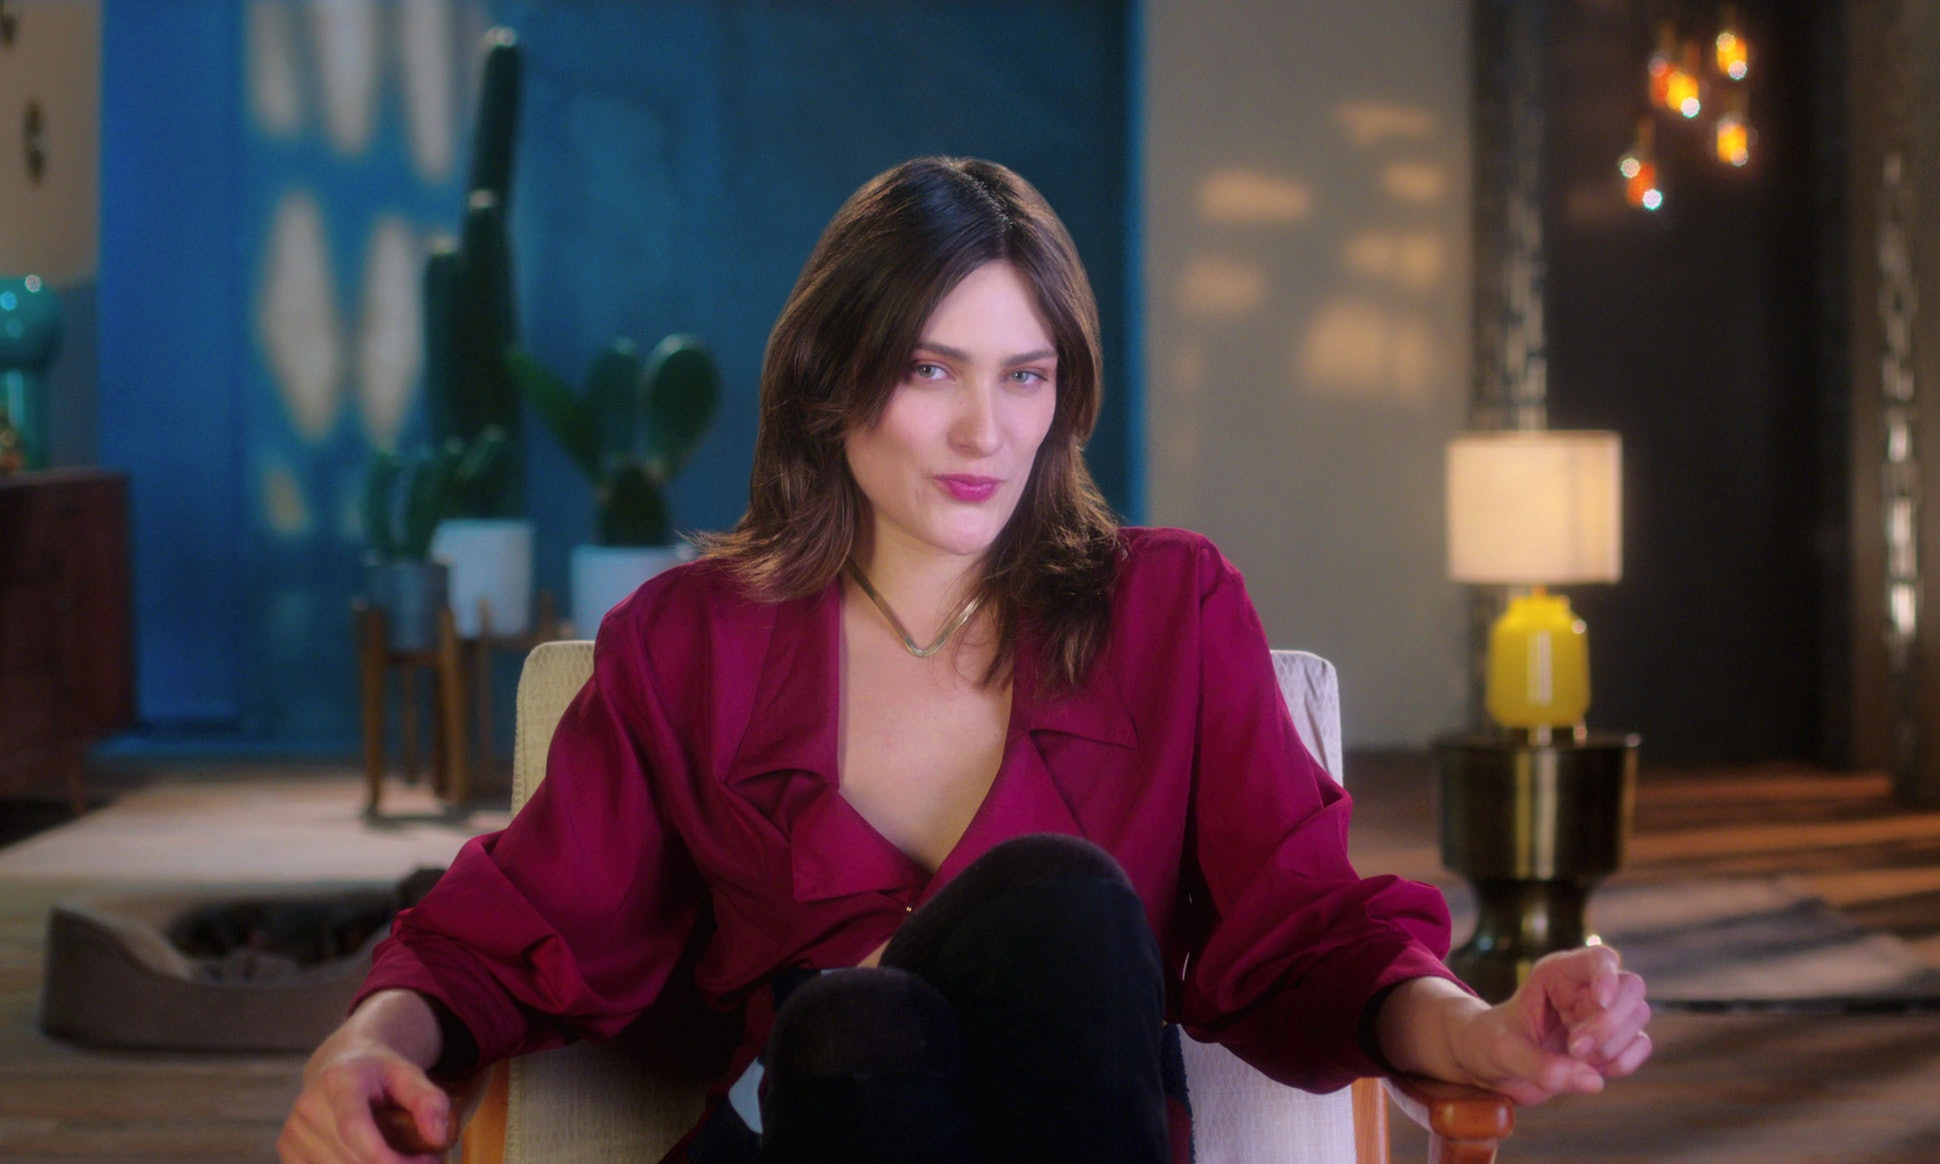 Who Is Columba Diaz? This 'Made In Mexico' Star Will Be Caught Up In Relationship Drama This Season